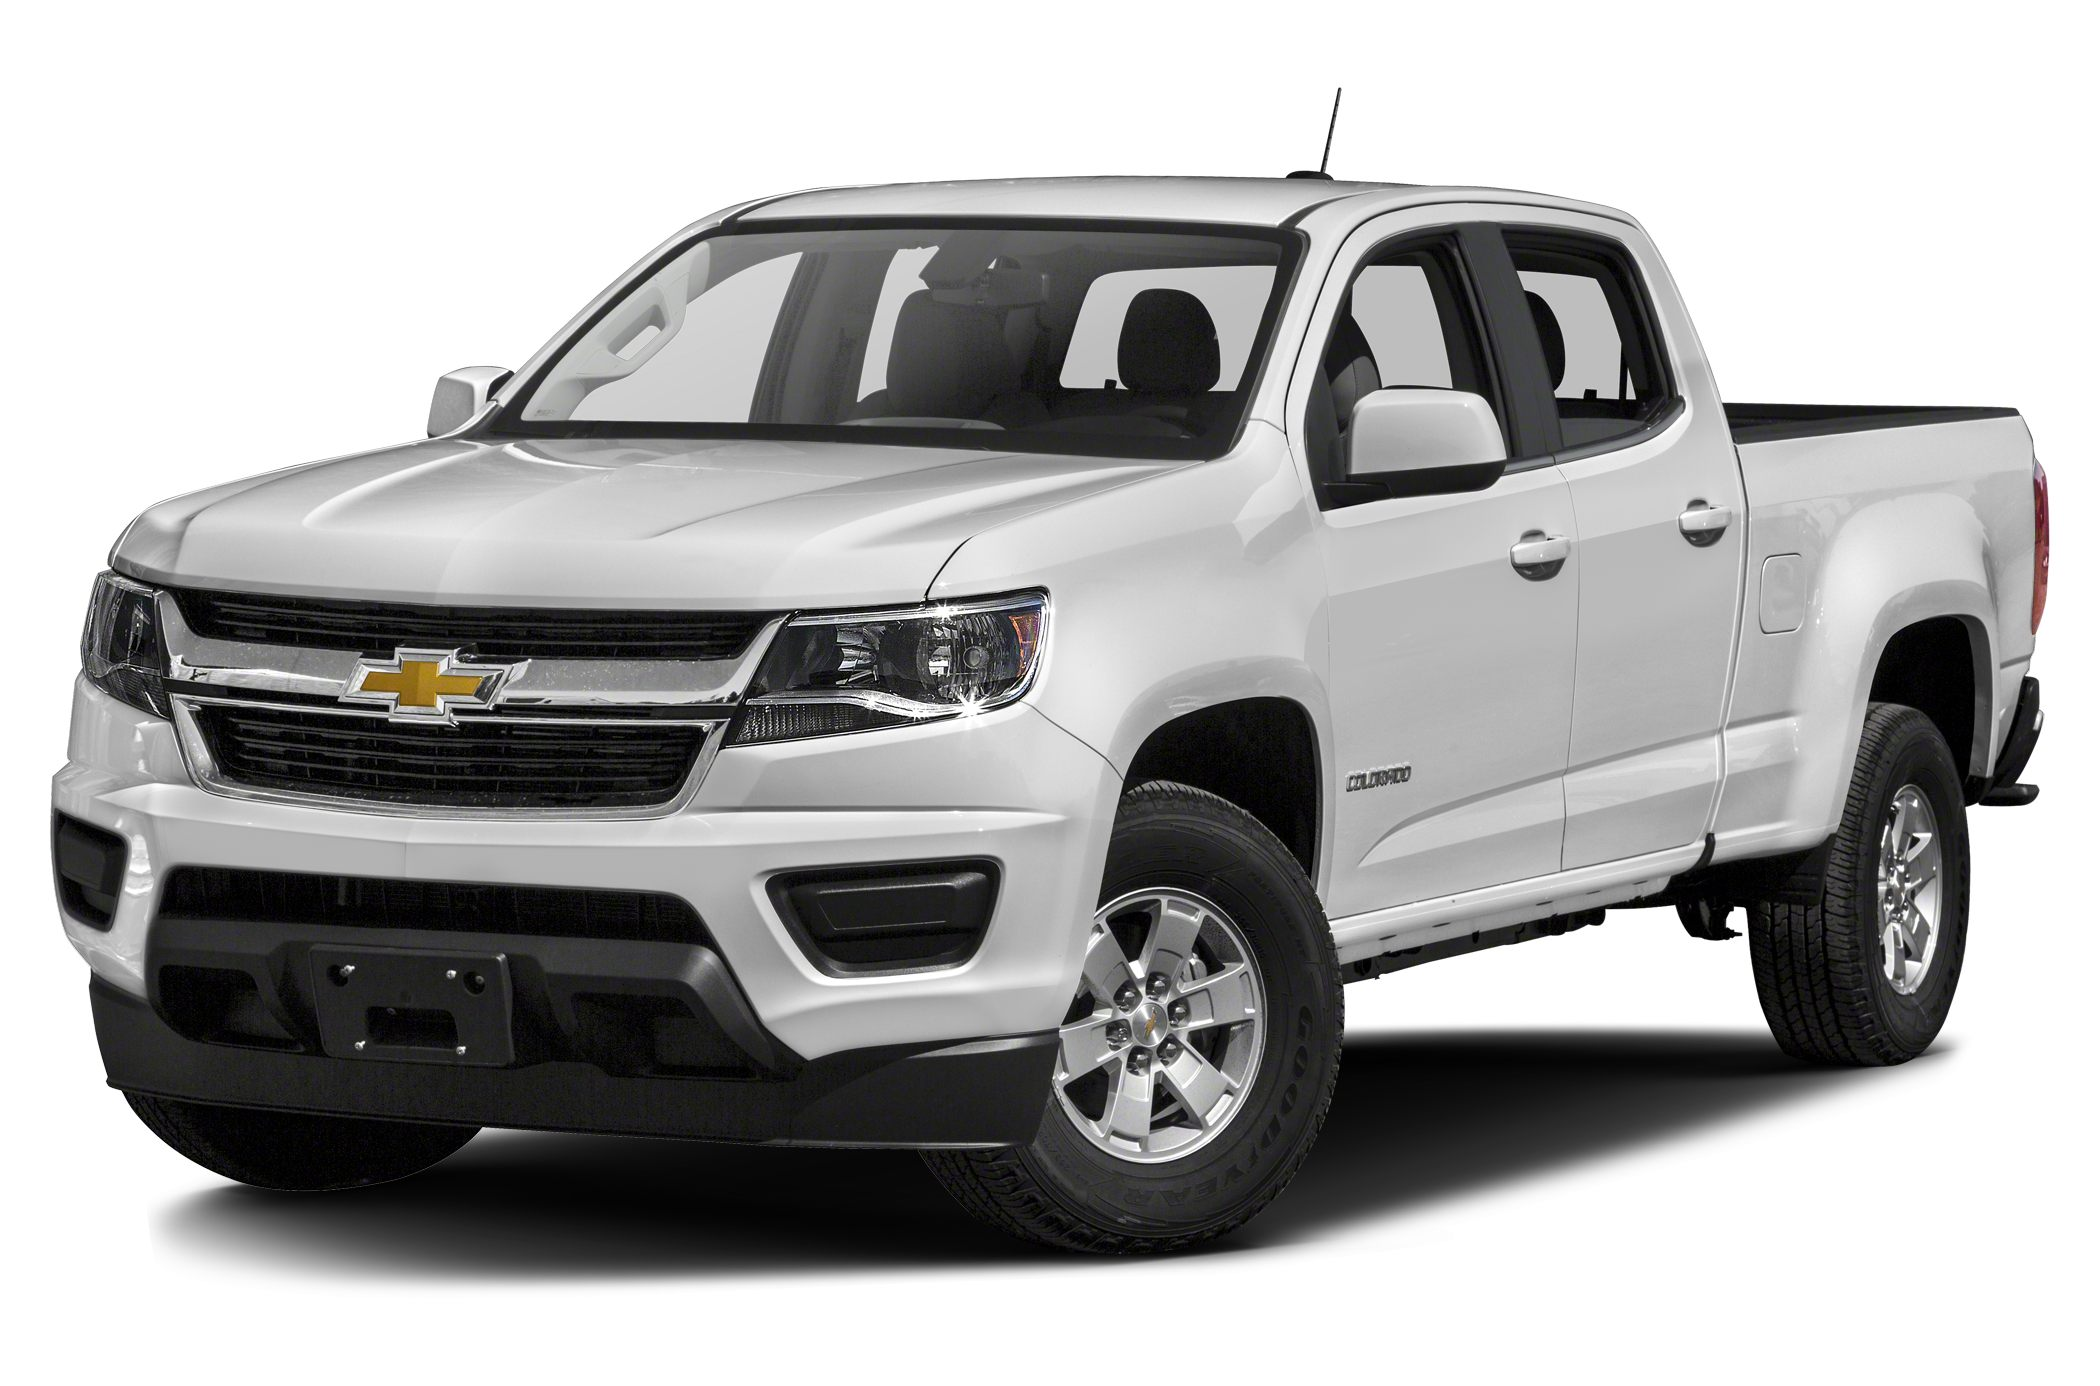 2018 Chevrolet Colorado Wt 4x4 Crew Cab 5 Ft Box 128 3 In Wb Specs And Prices